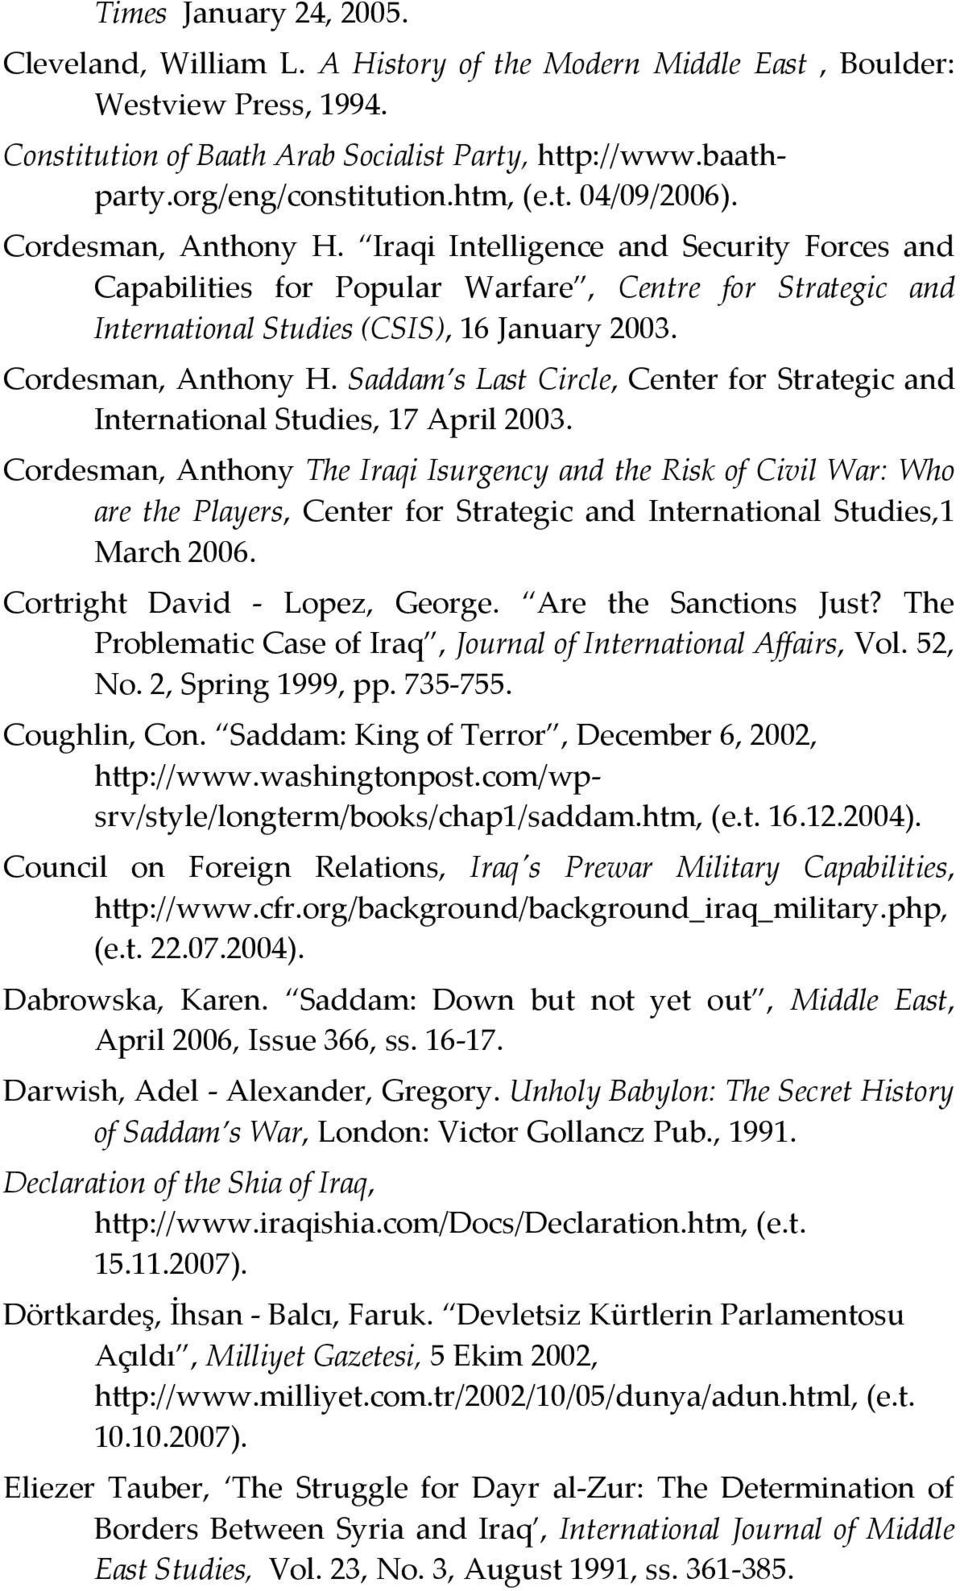 Iraqi Intelligence and Security Forces and Capabilities for Popular Warfare, Centre for Strategic and International Studies (CSIS), 16 January 2003. Cordesman, Anthony H.